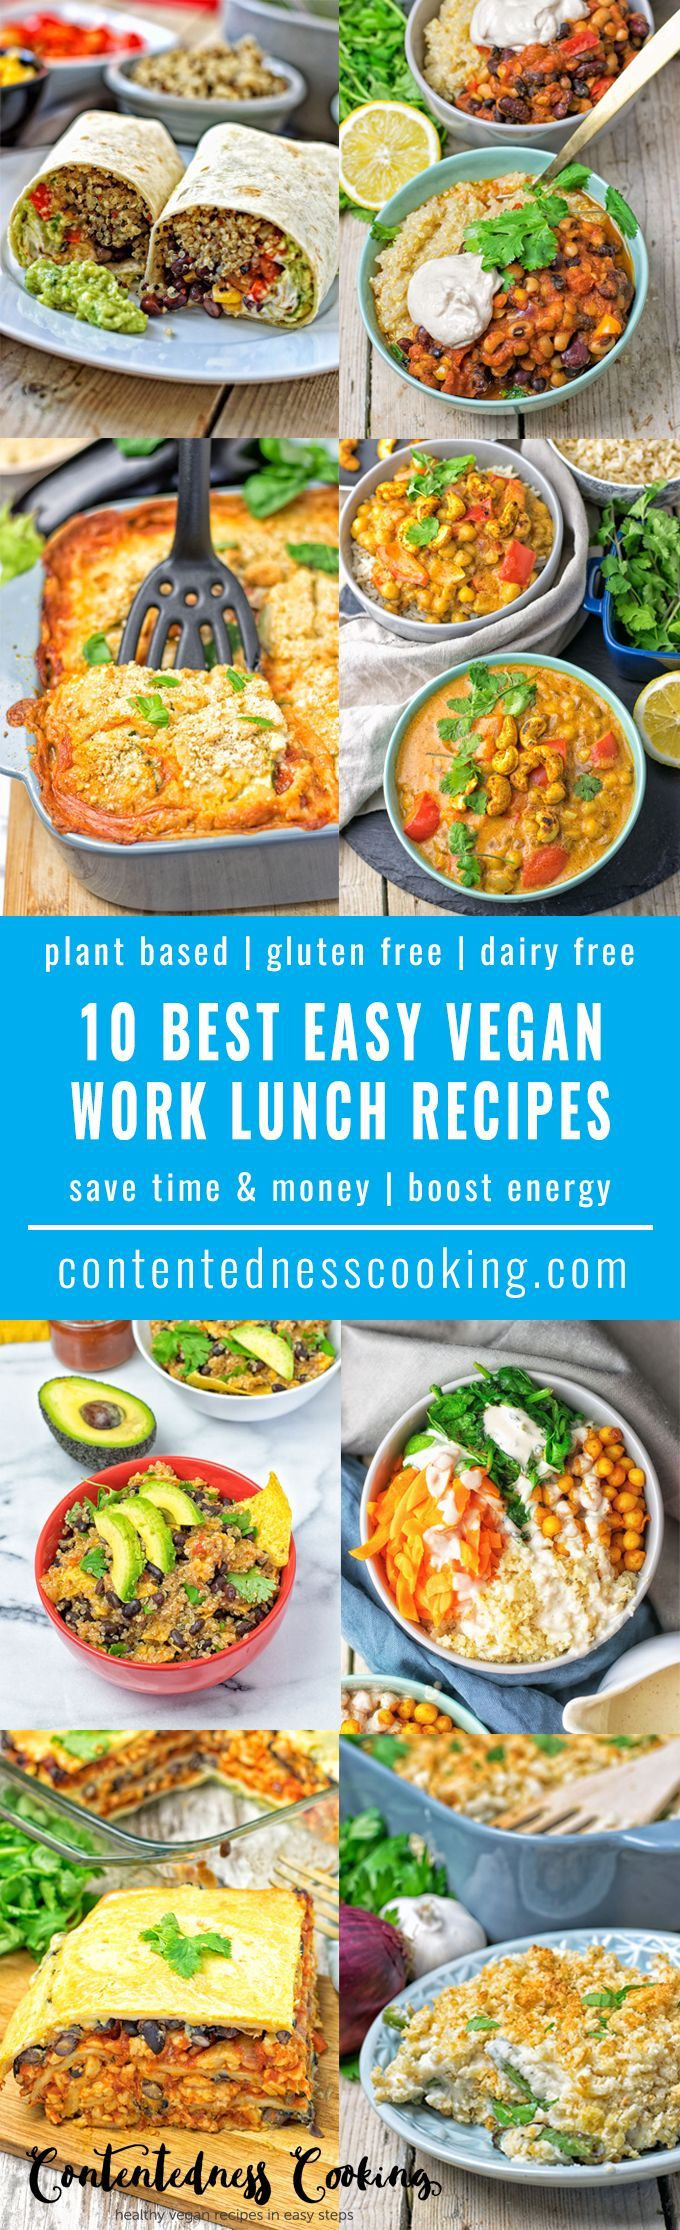 My list of the 10 Best Easy Vegan Work Lunch Recipes for you to enjoy a stress free lunch break and skip the greasy fast food options. 10 perfect meals to save you time and money and boost you with energy in the middle of the day. #vegan #glutenfree #lunc